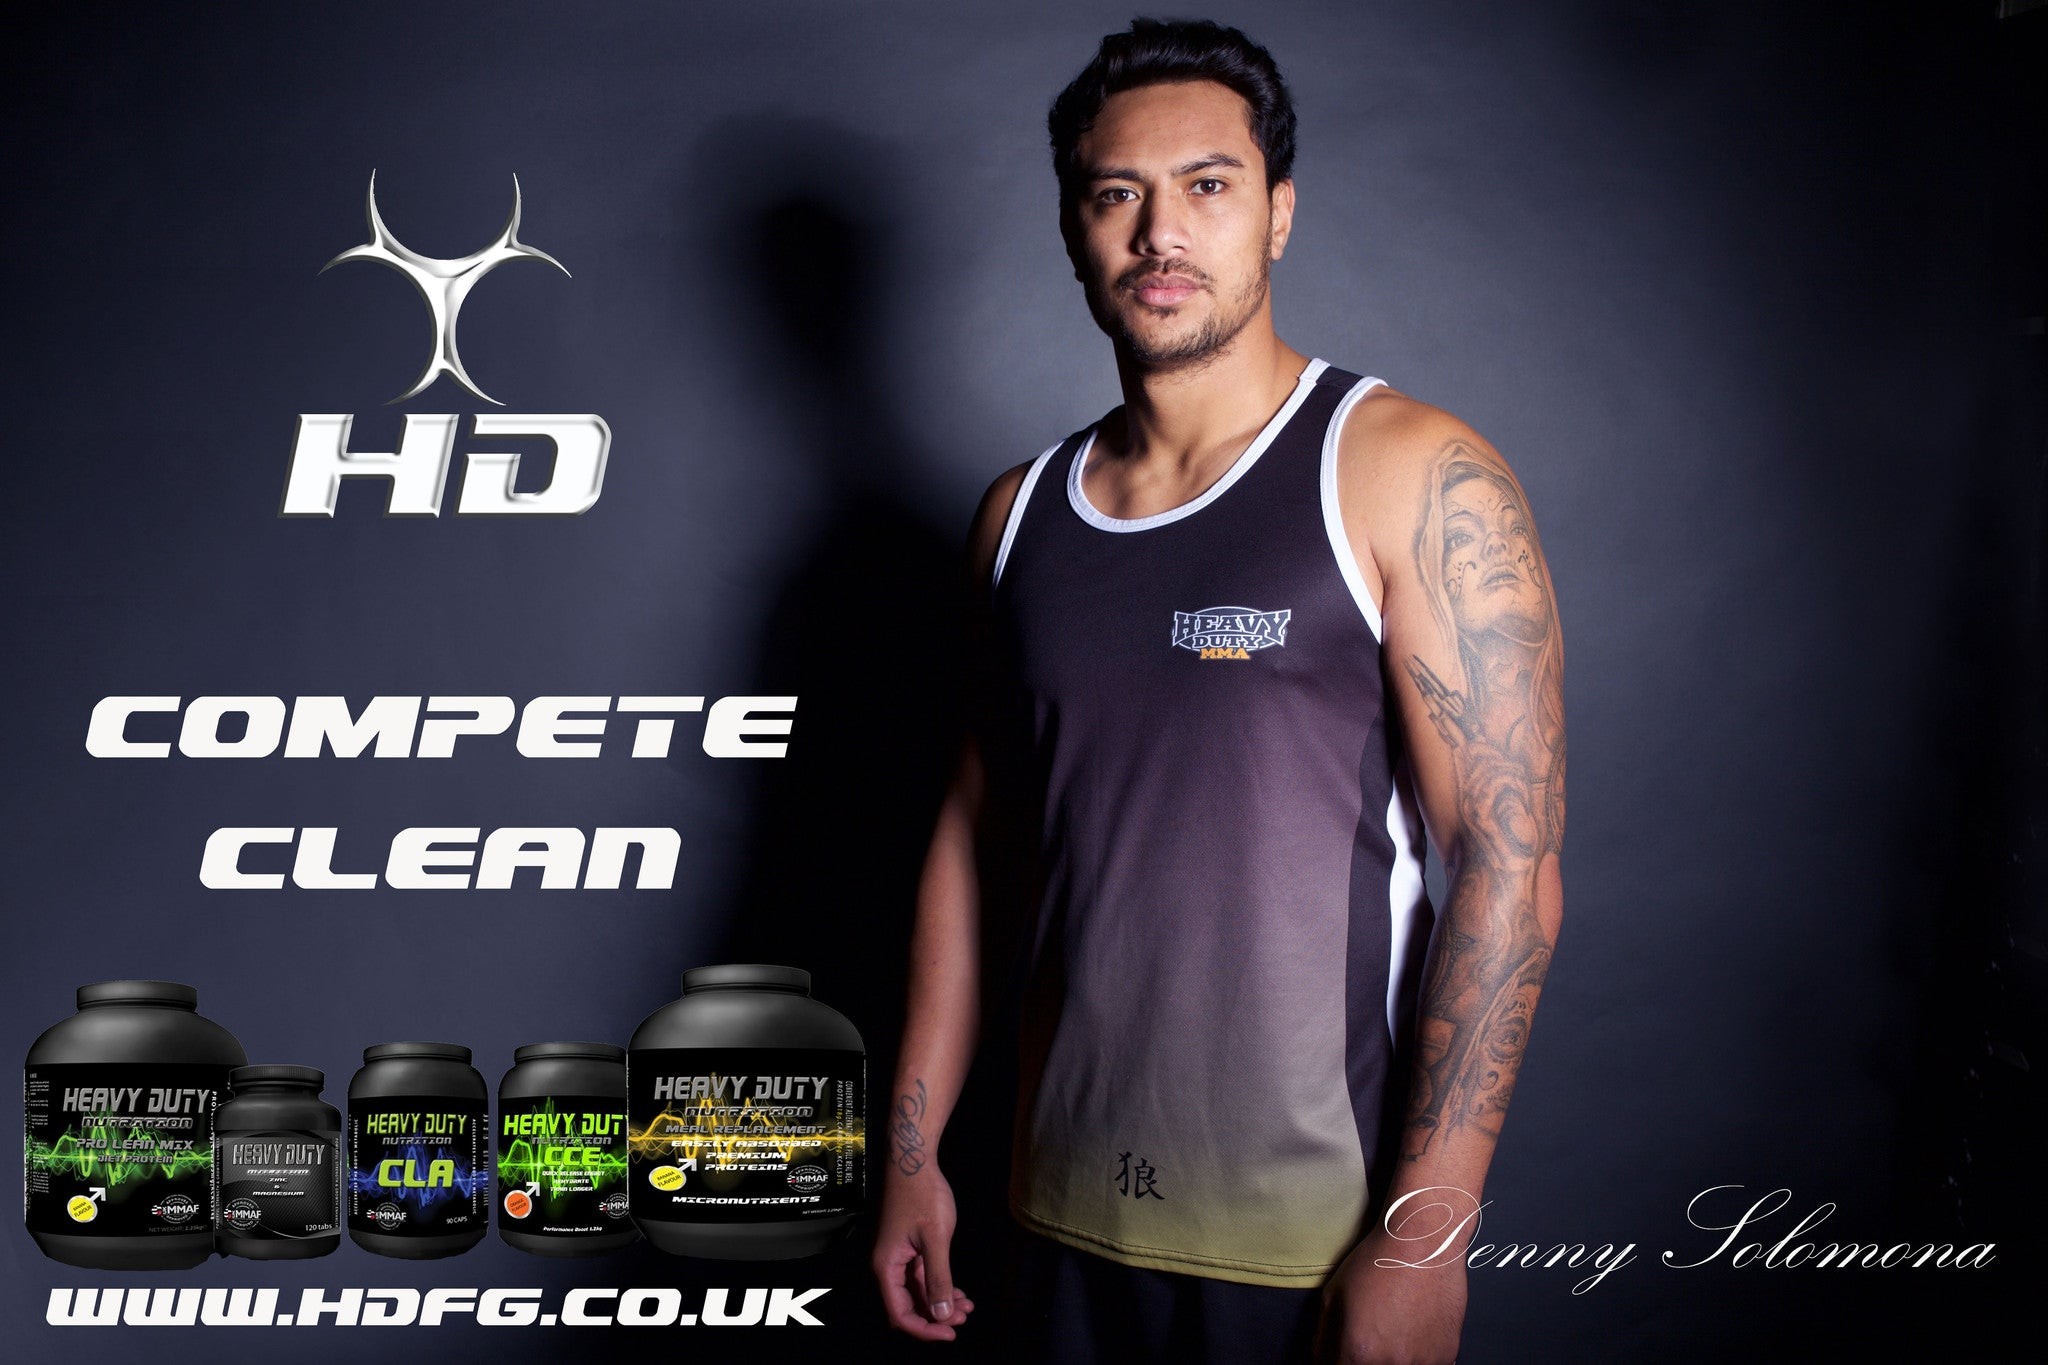 Get 10% Off Heavy Duty Nutrition with Denny Solomona